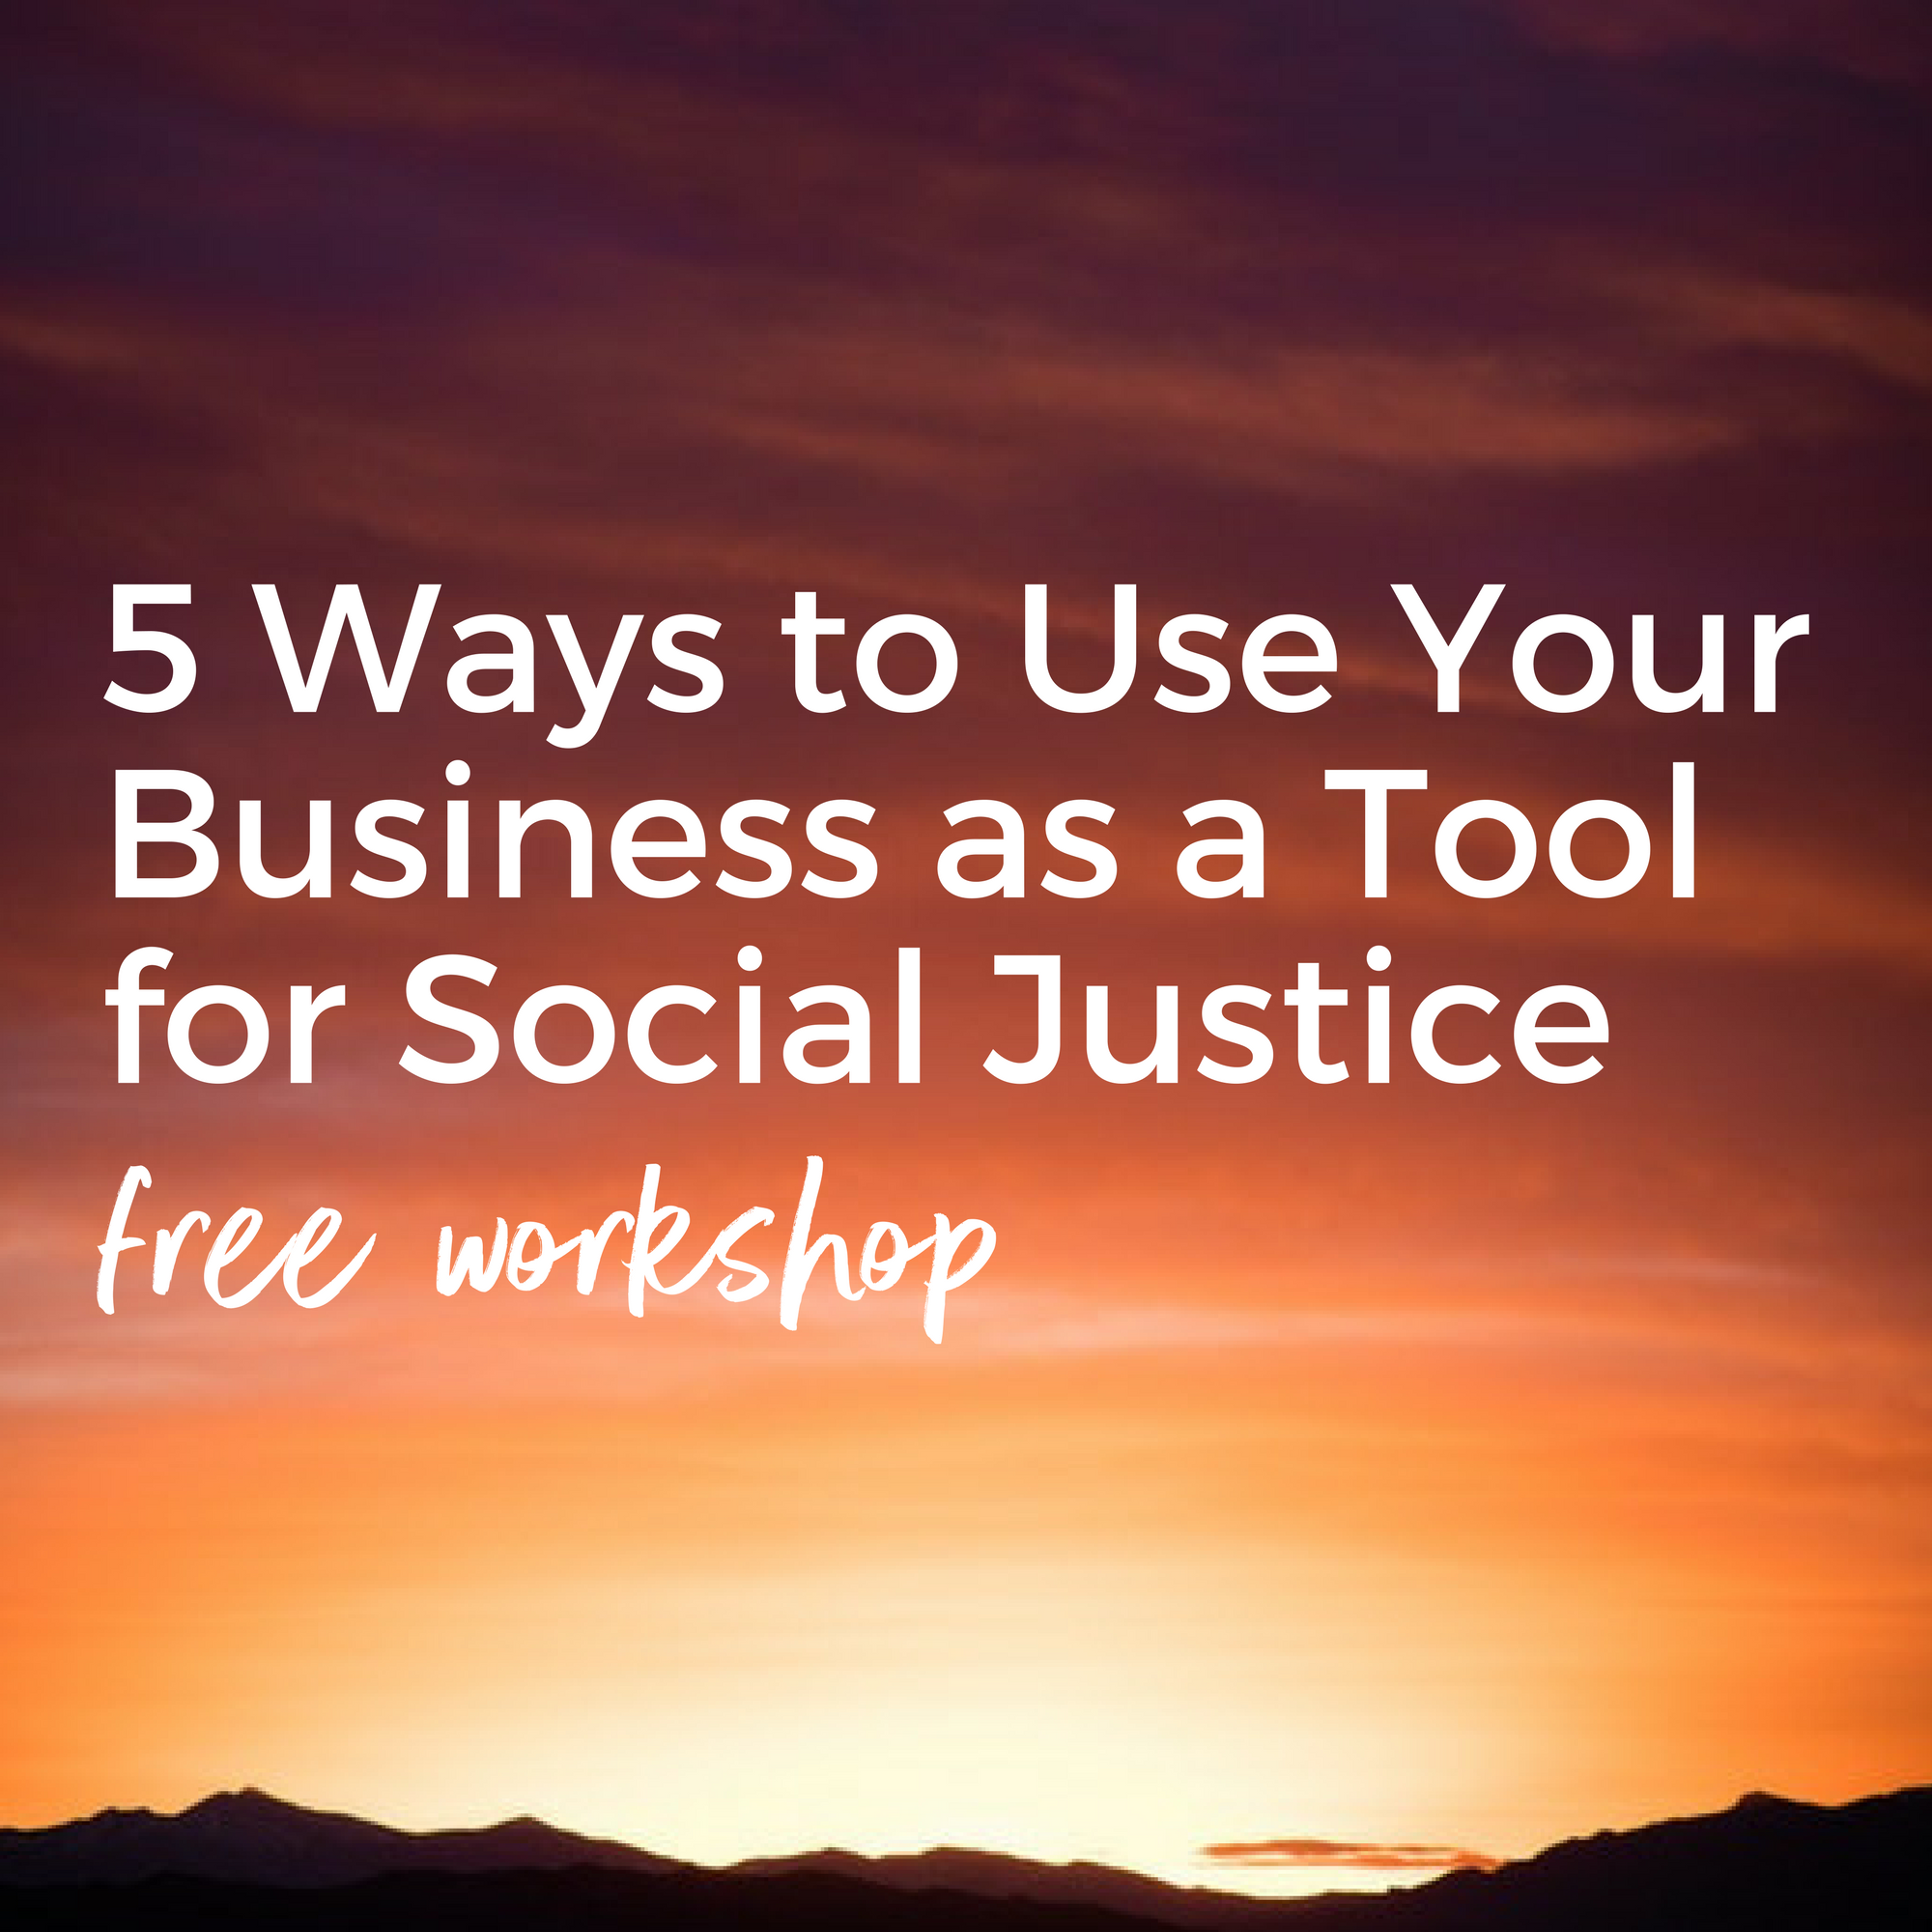 5 Ways to Use Your Business as a Tool for Social Justice-2.png